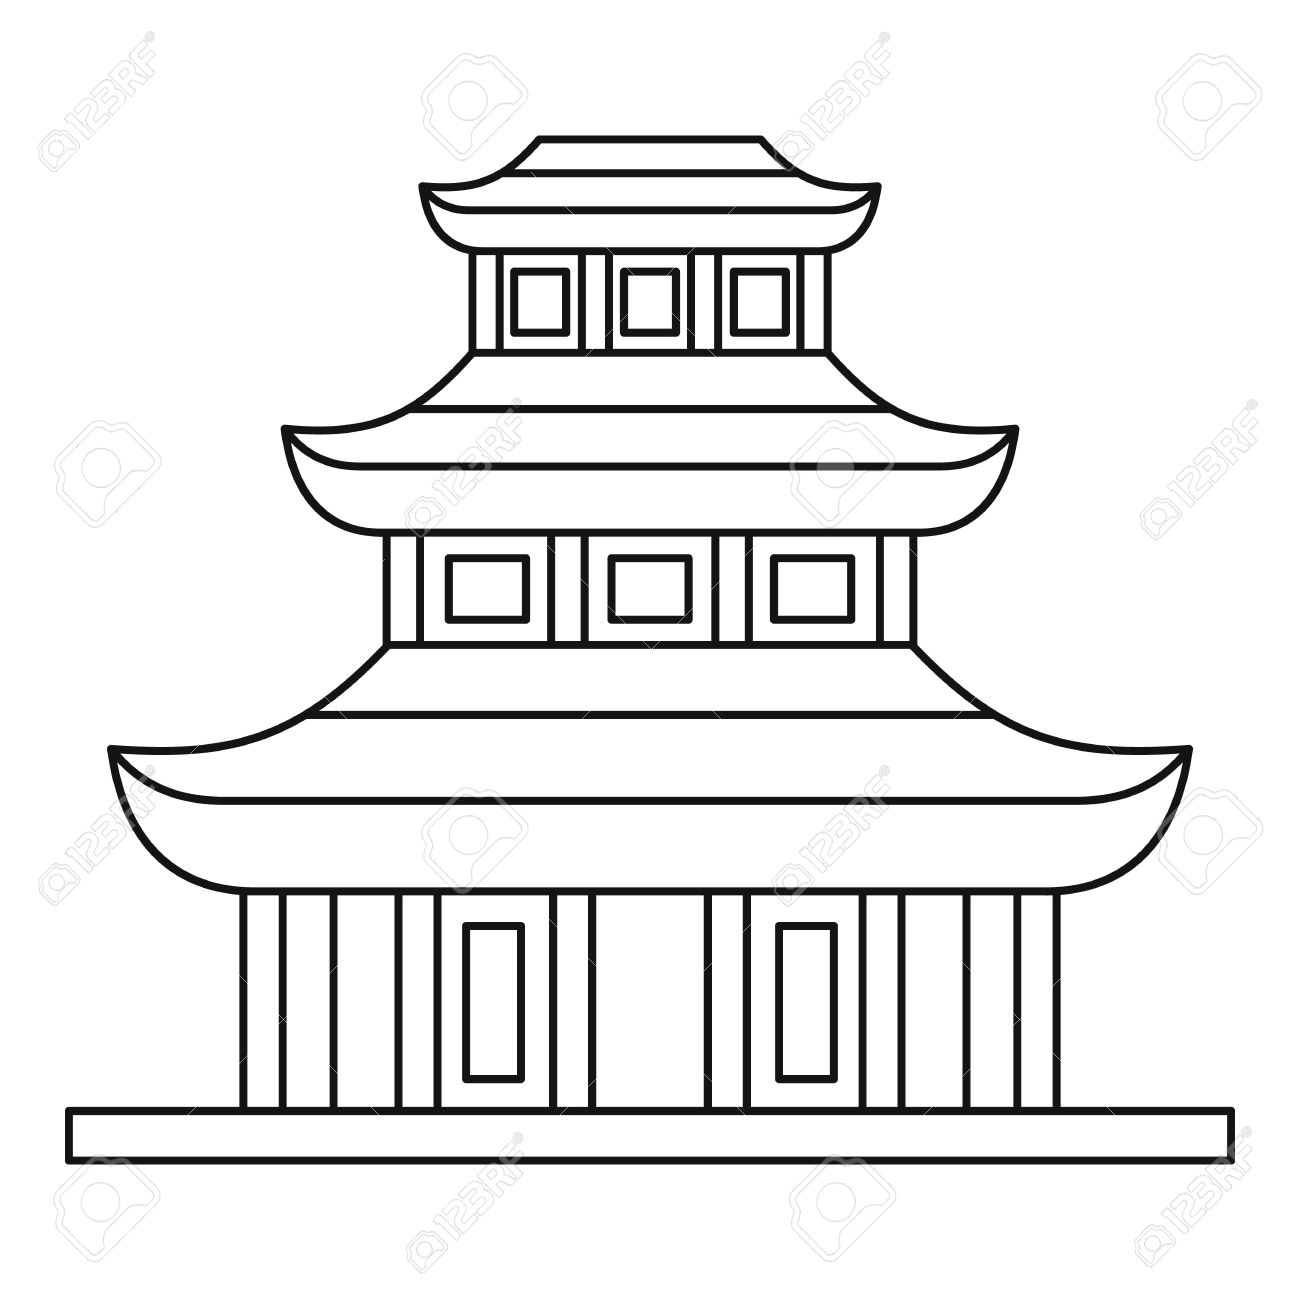 Place clipart buddhist temple #10